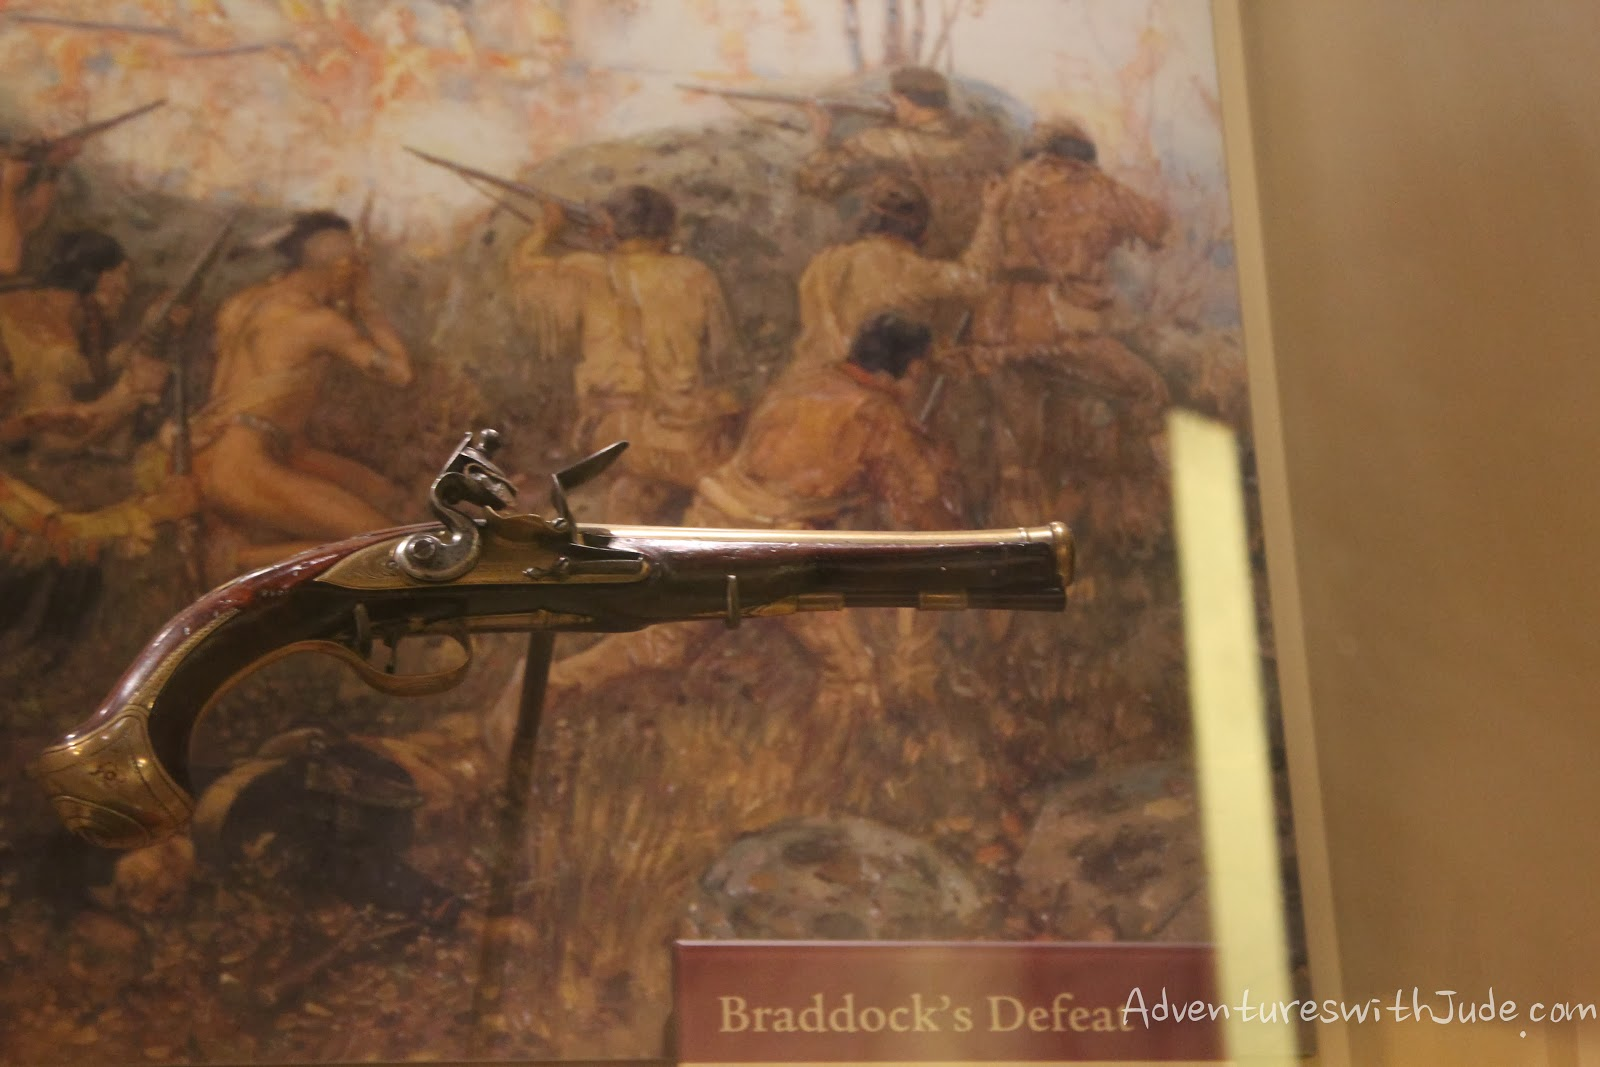 General Braddock's pistol, given to George Washington